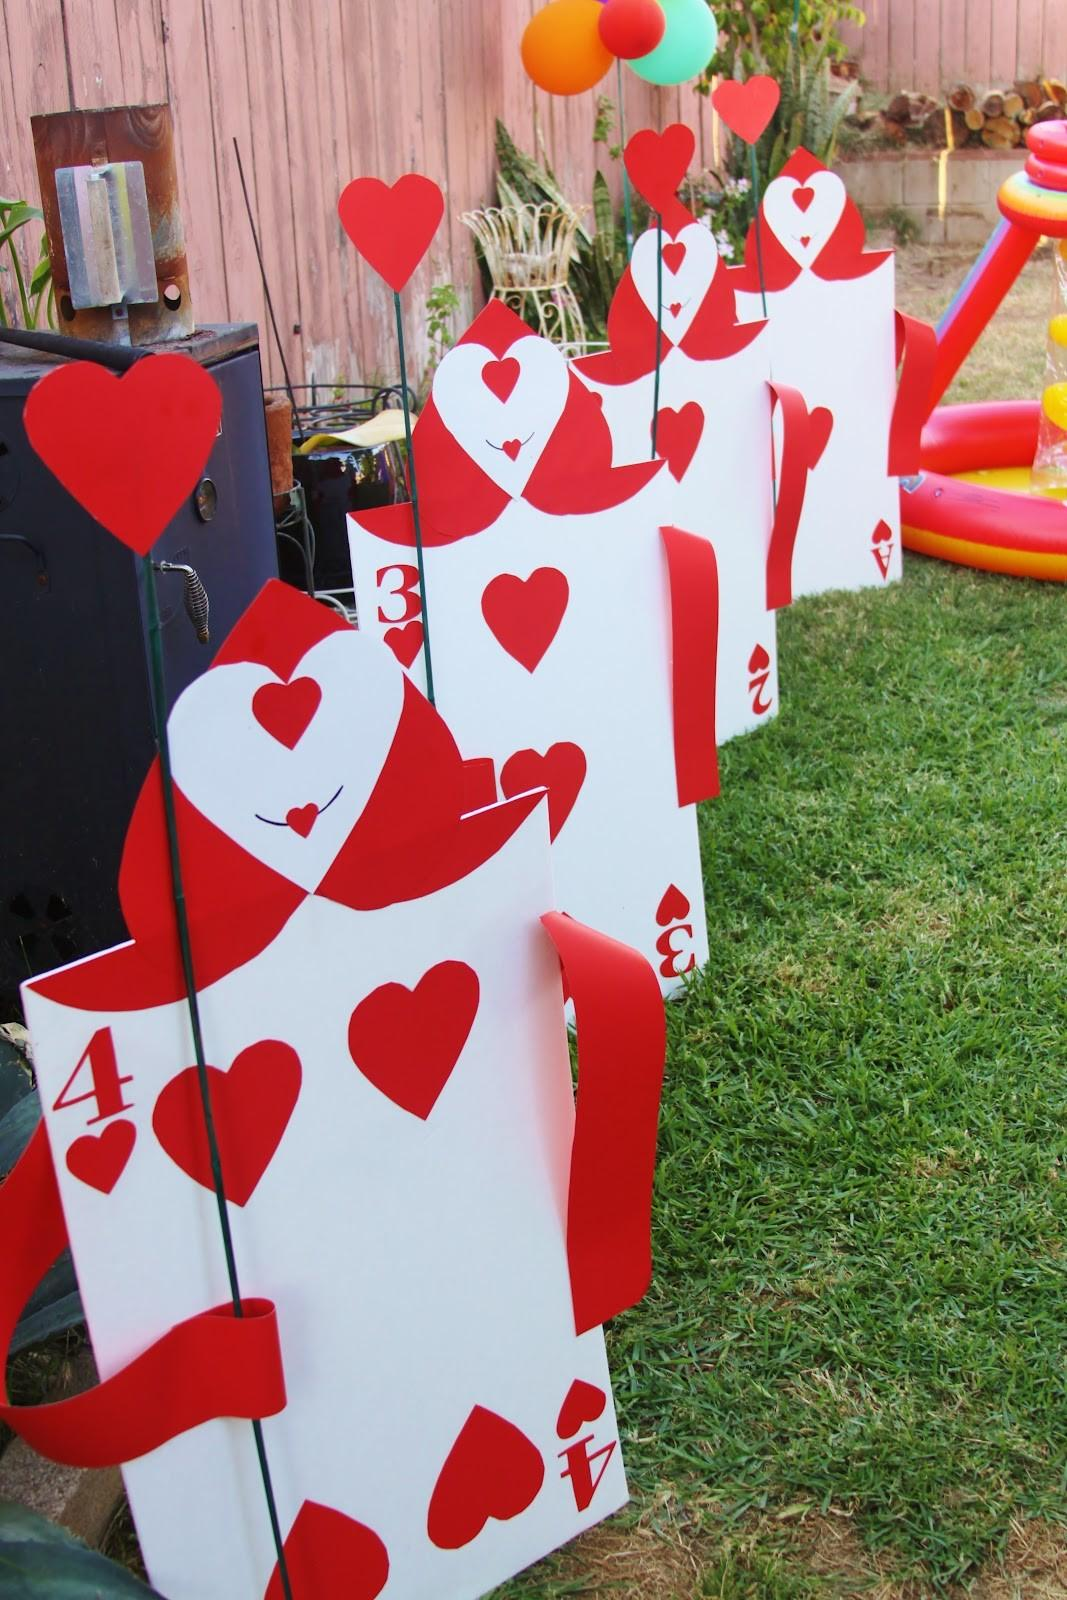 Of The Best Alice In Wonderland Party Ideas That Will Impress Your Friends Photo Gallery Decoratorist